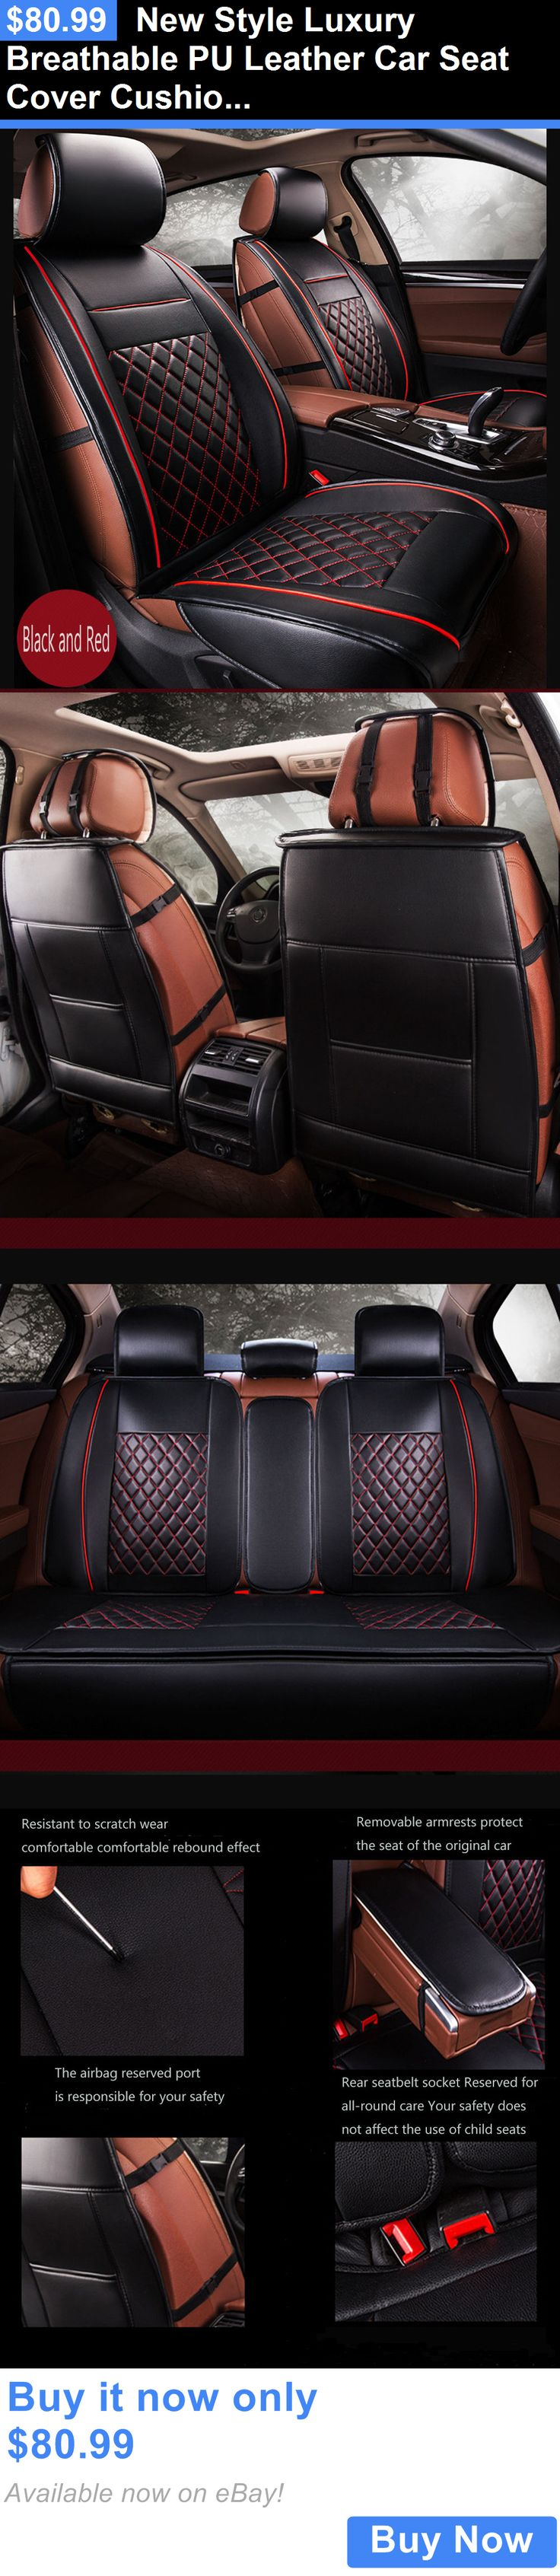 Luxury cars new style luxury breathable pu leather car seat cover cushion pad black red